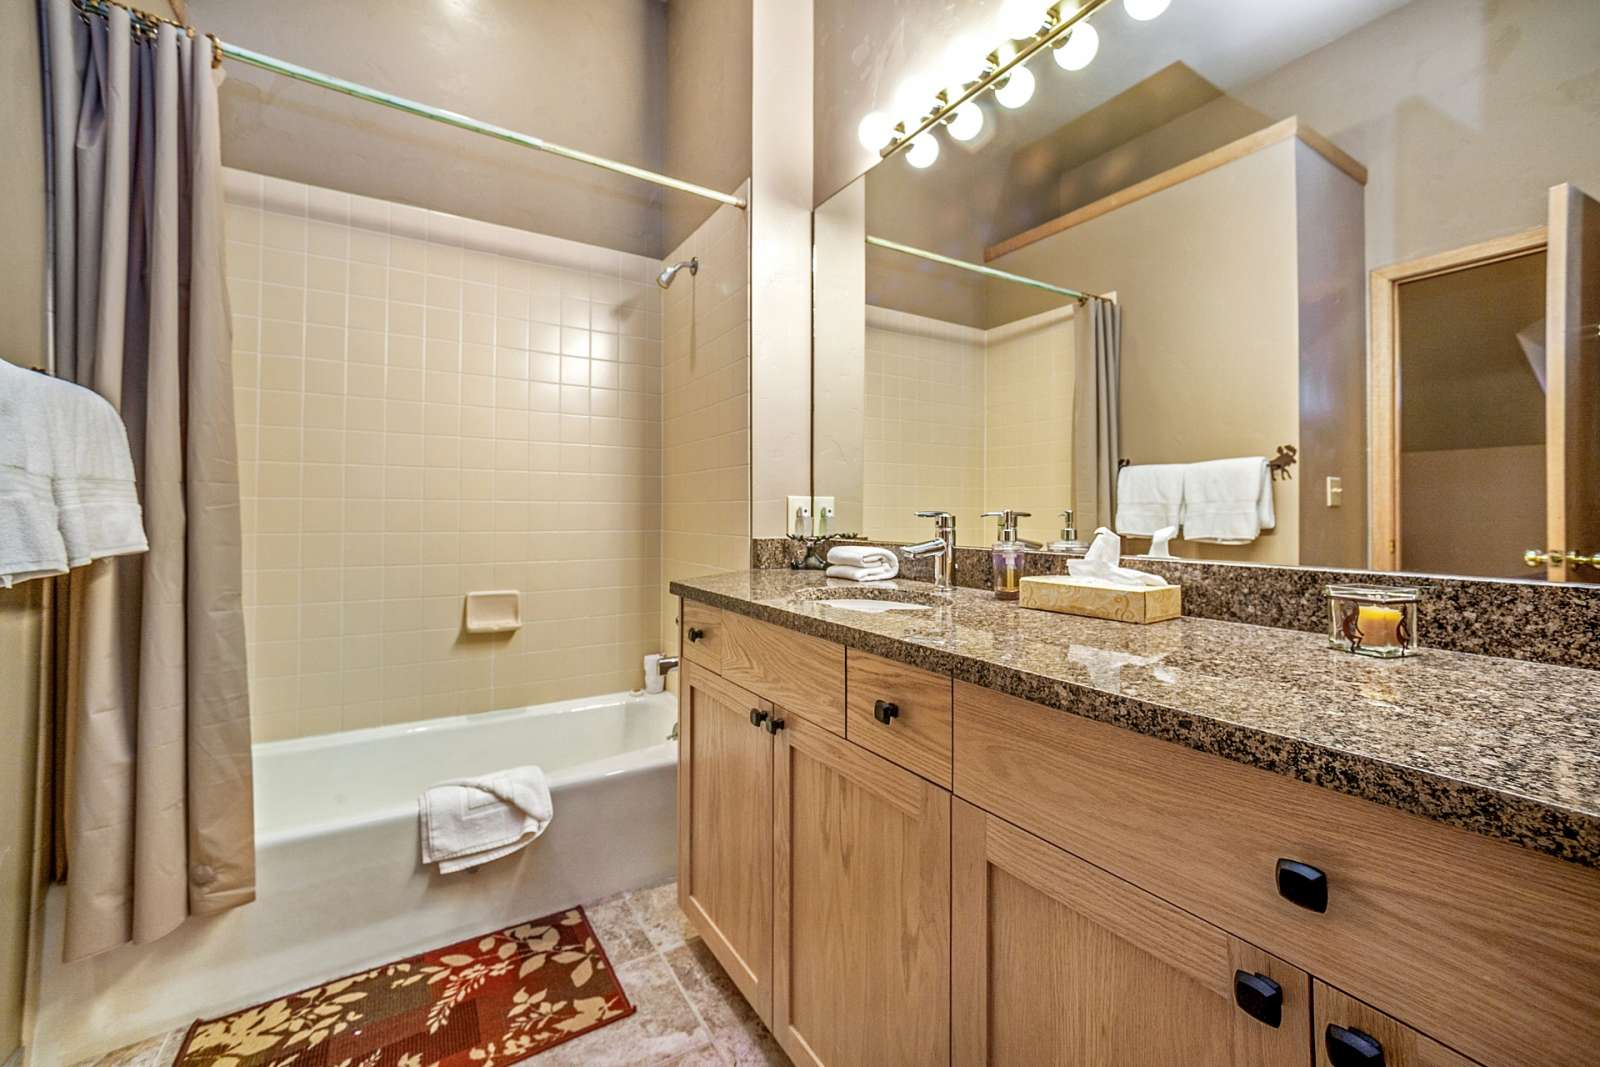 Eagle Vail Vacation Rental | Nordic Trails In Winter, Bike Trails In  Summer, Convenient To Vail U0026 BC, Eagle Vail Hm, New Carpet!